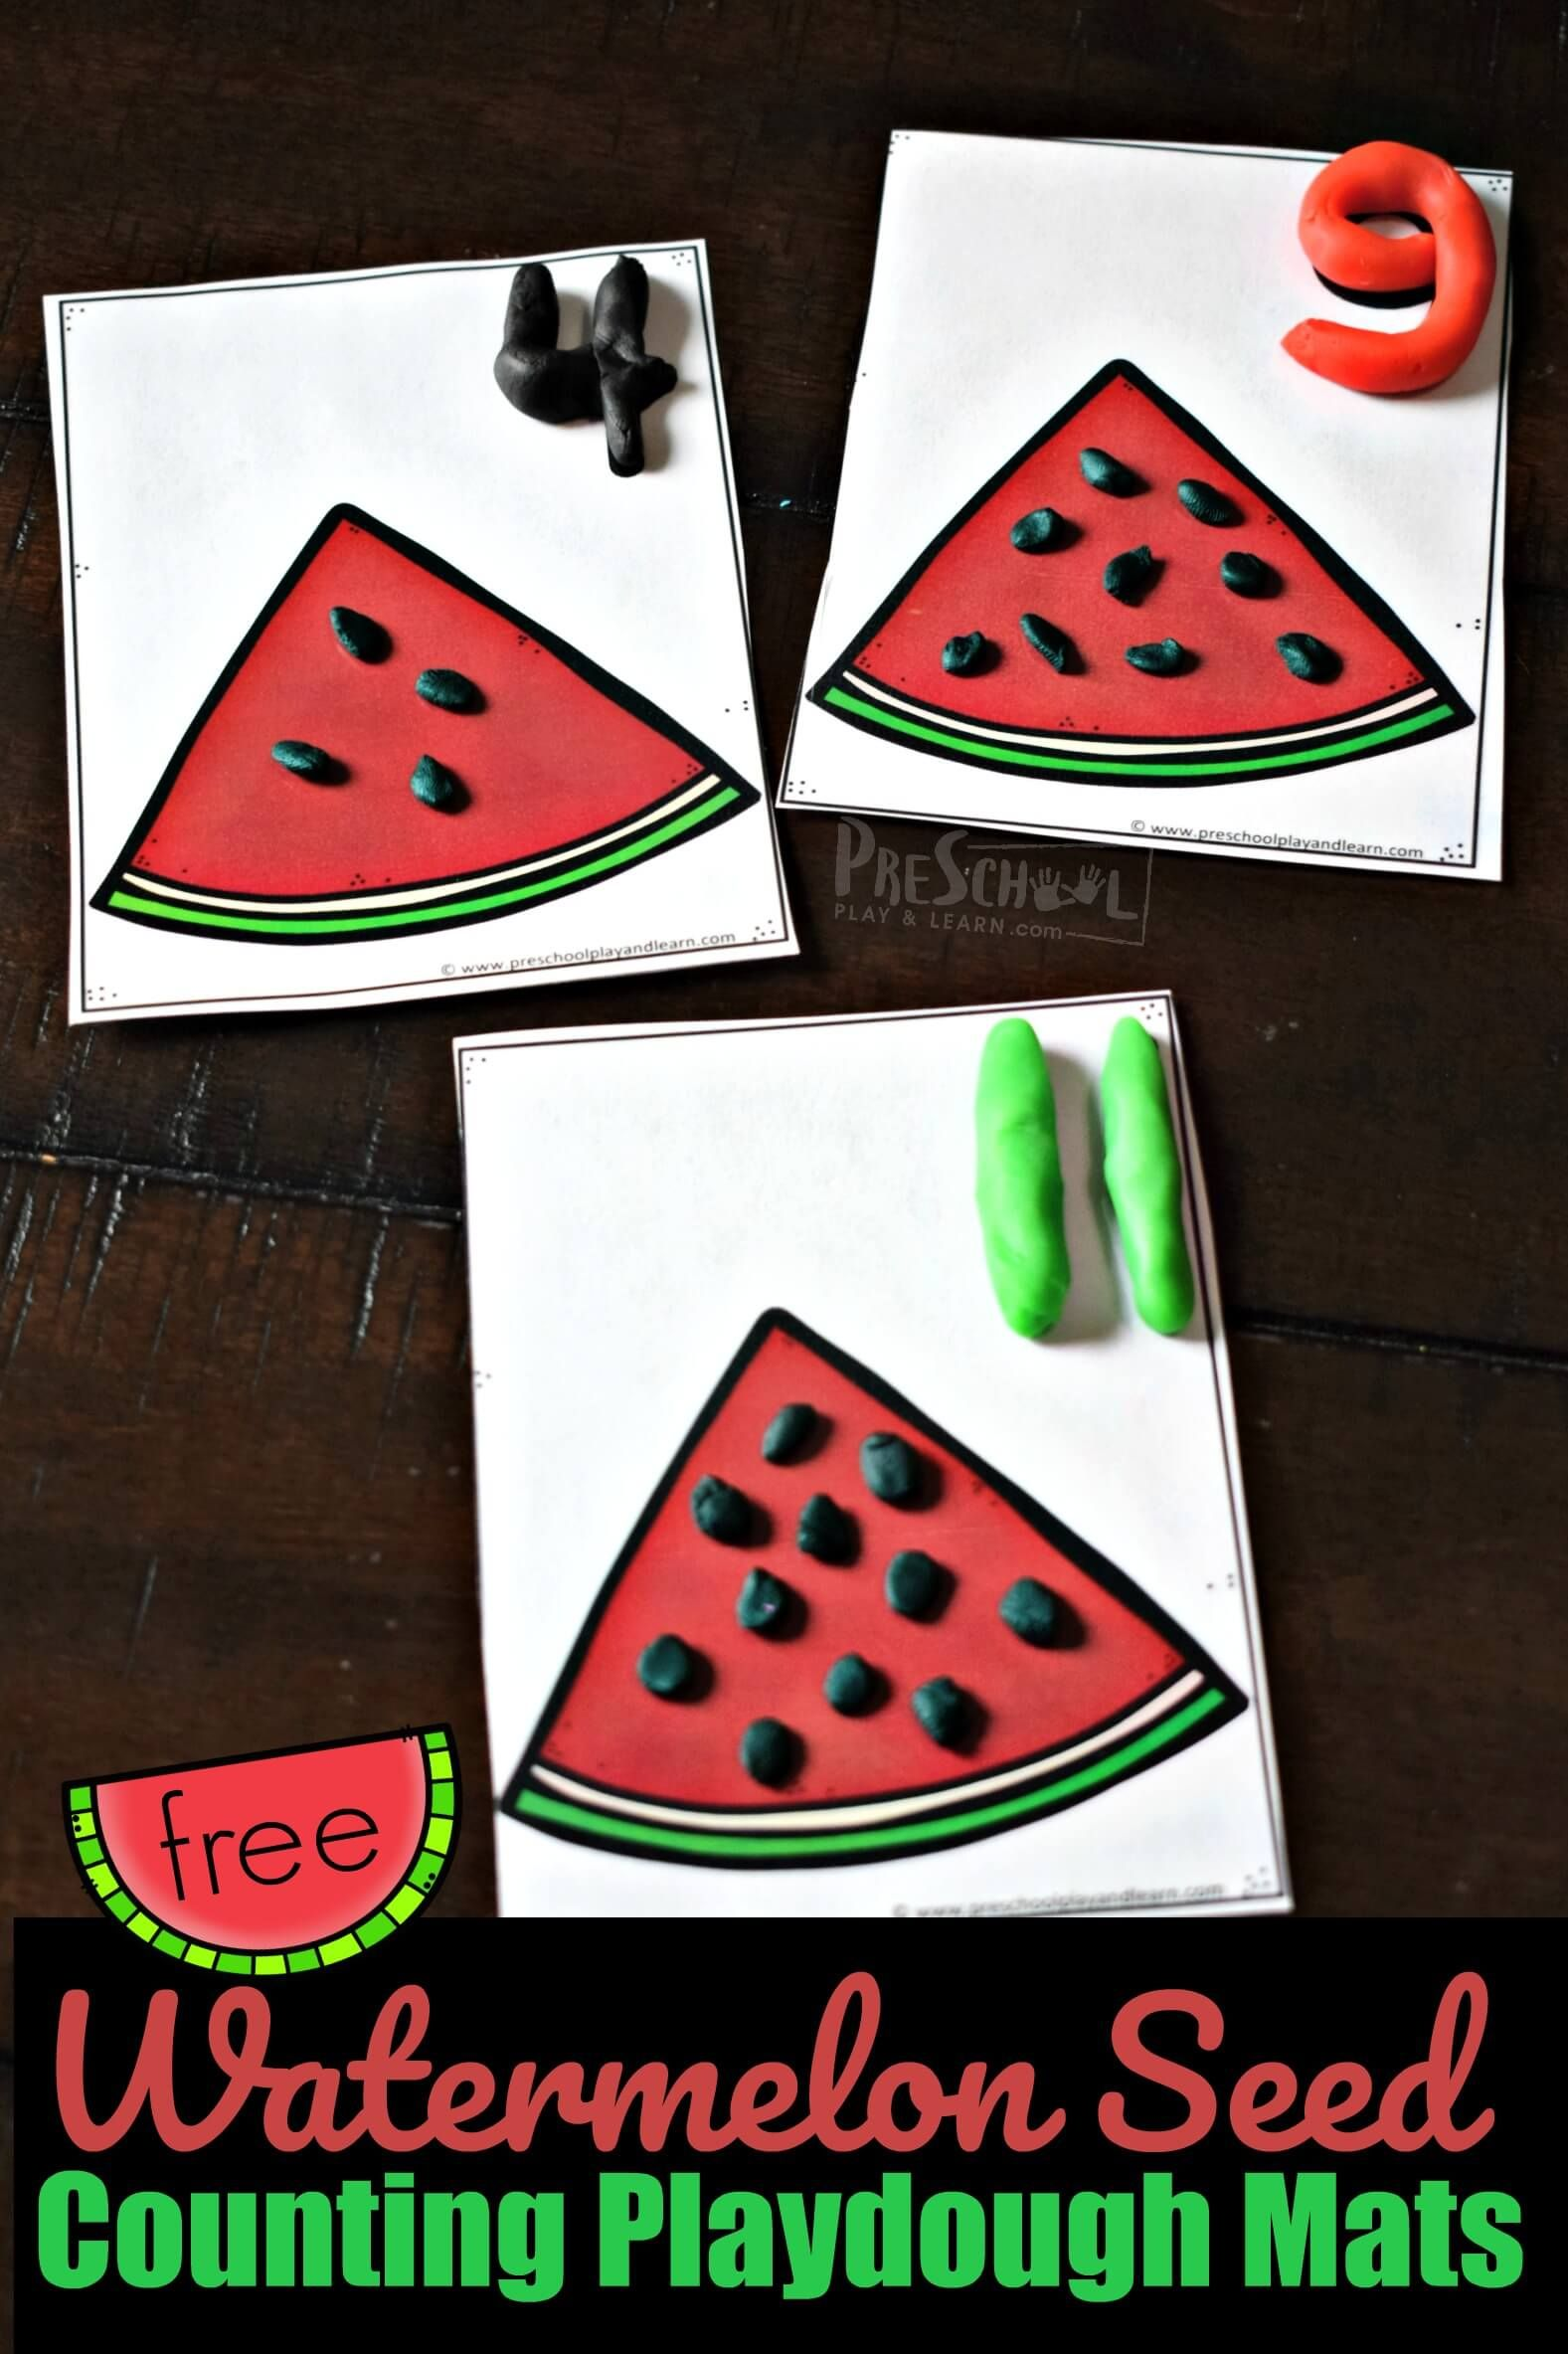 Free Watermelon Seed Counting Playdough Mats Free Printable Activity For Summe Math Activities Preschool Summer Preschool Activities Free Printable Activities